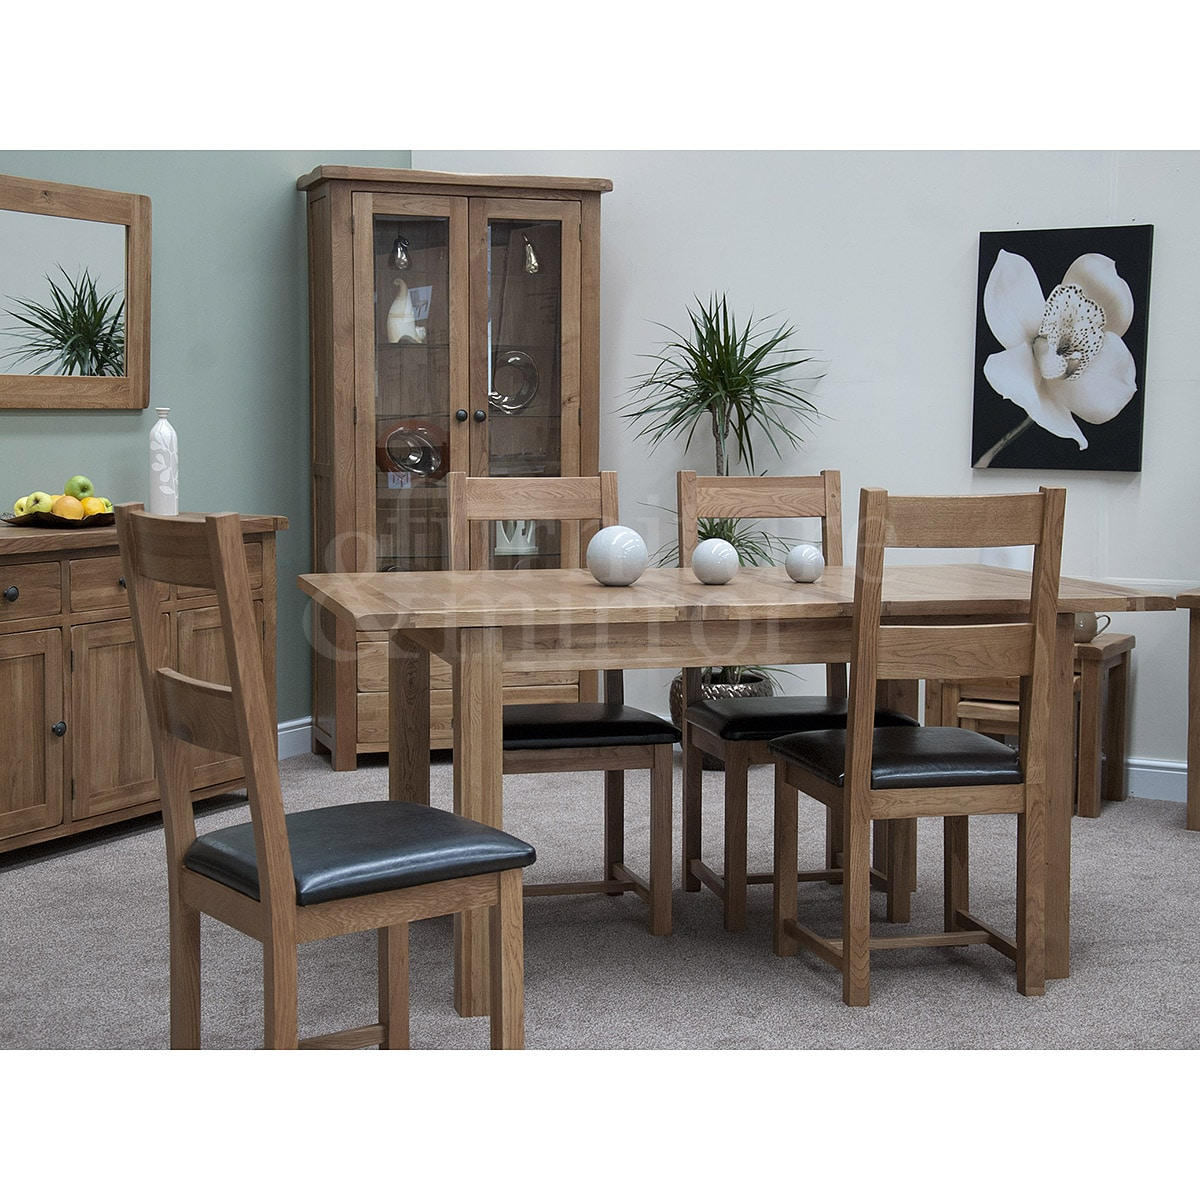 Extending Dining Table Sets Gallery Dining Table Ideas : RUSTEXT4 from sorahana.info size 1200 x 1200 jpeg 251kB